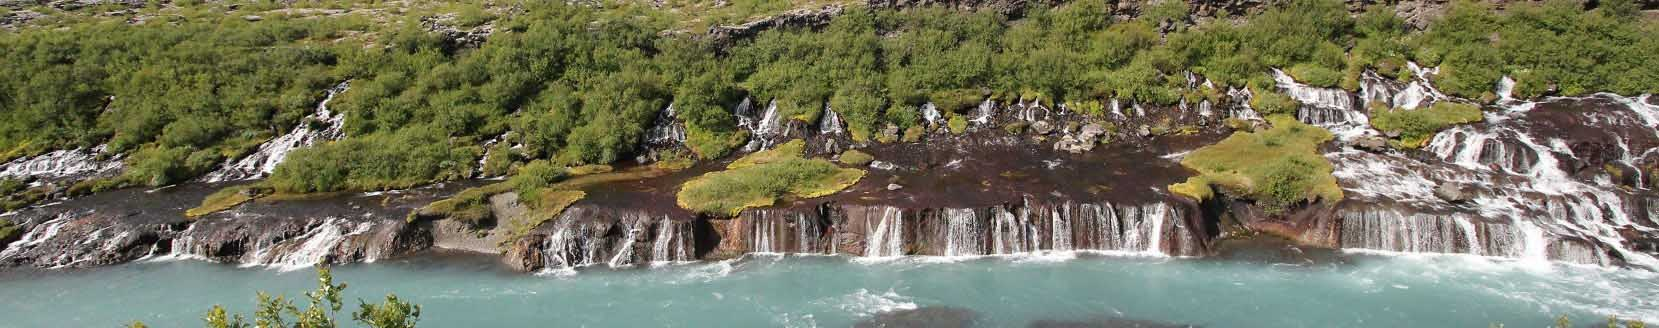 Best of Iceland Ring Road